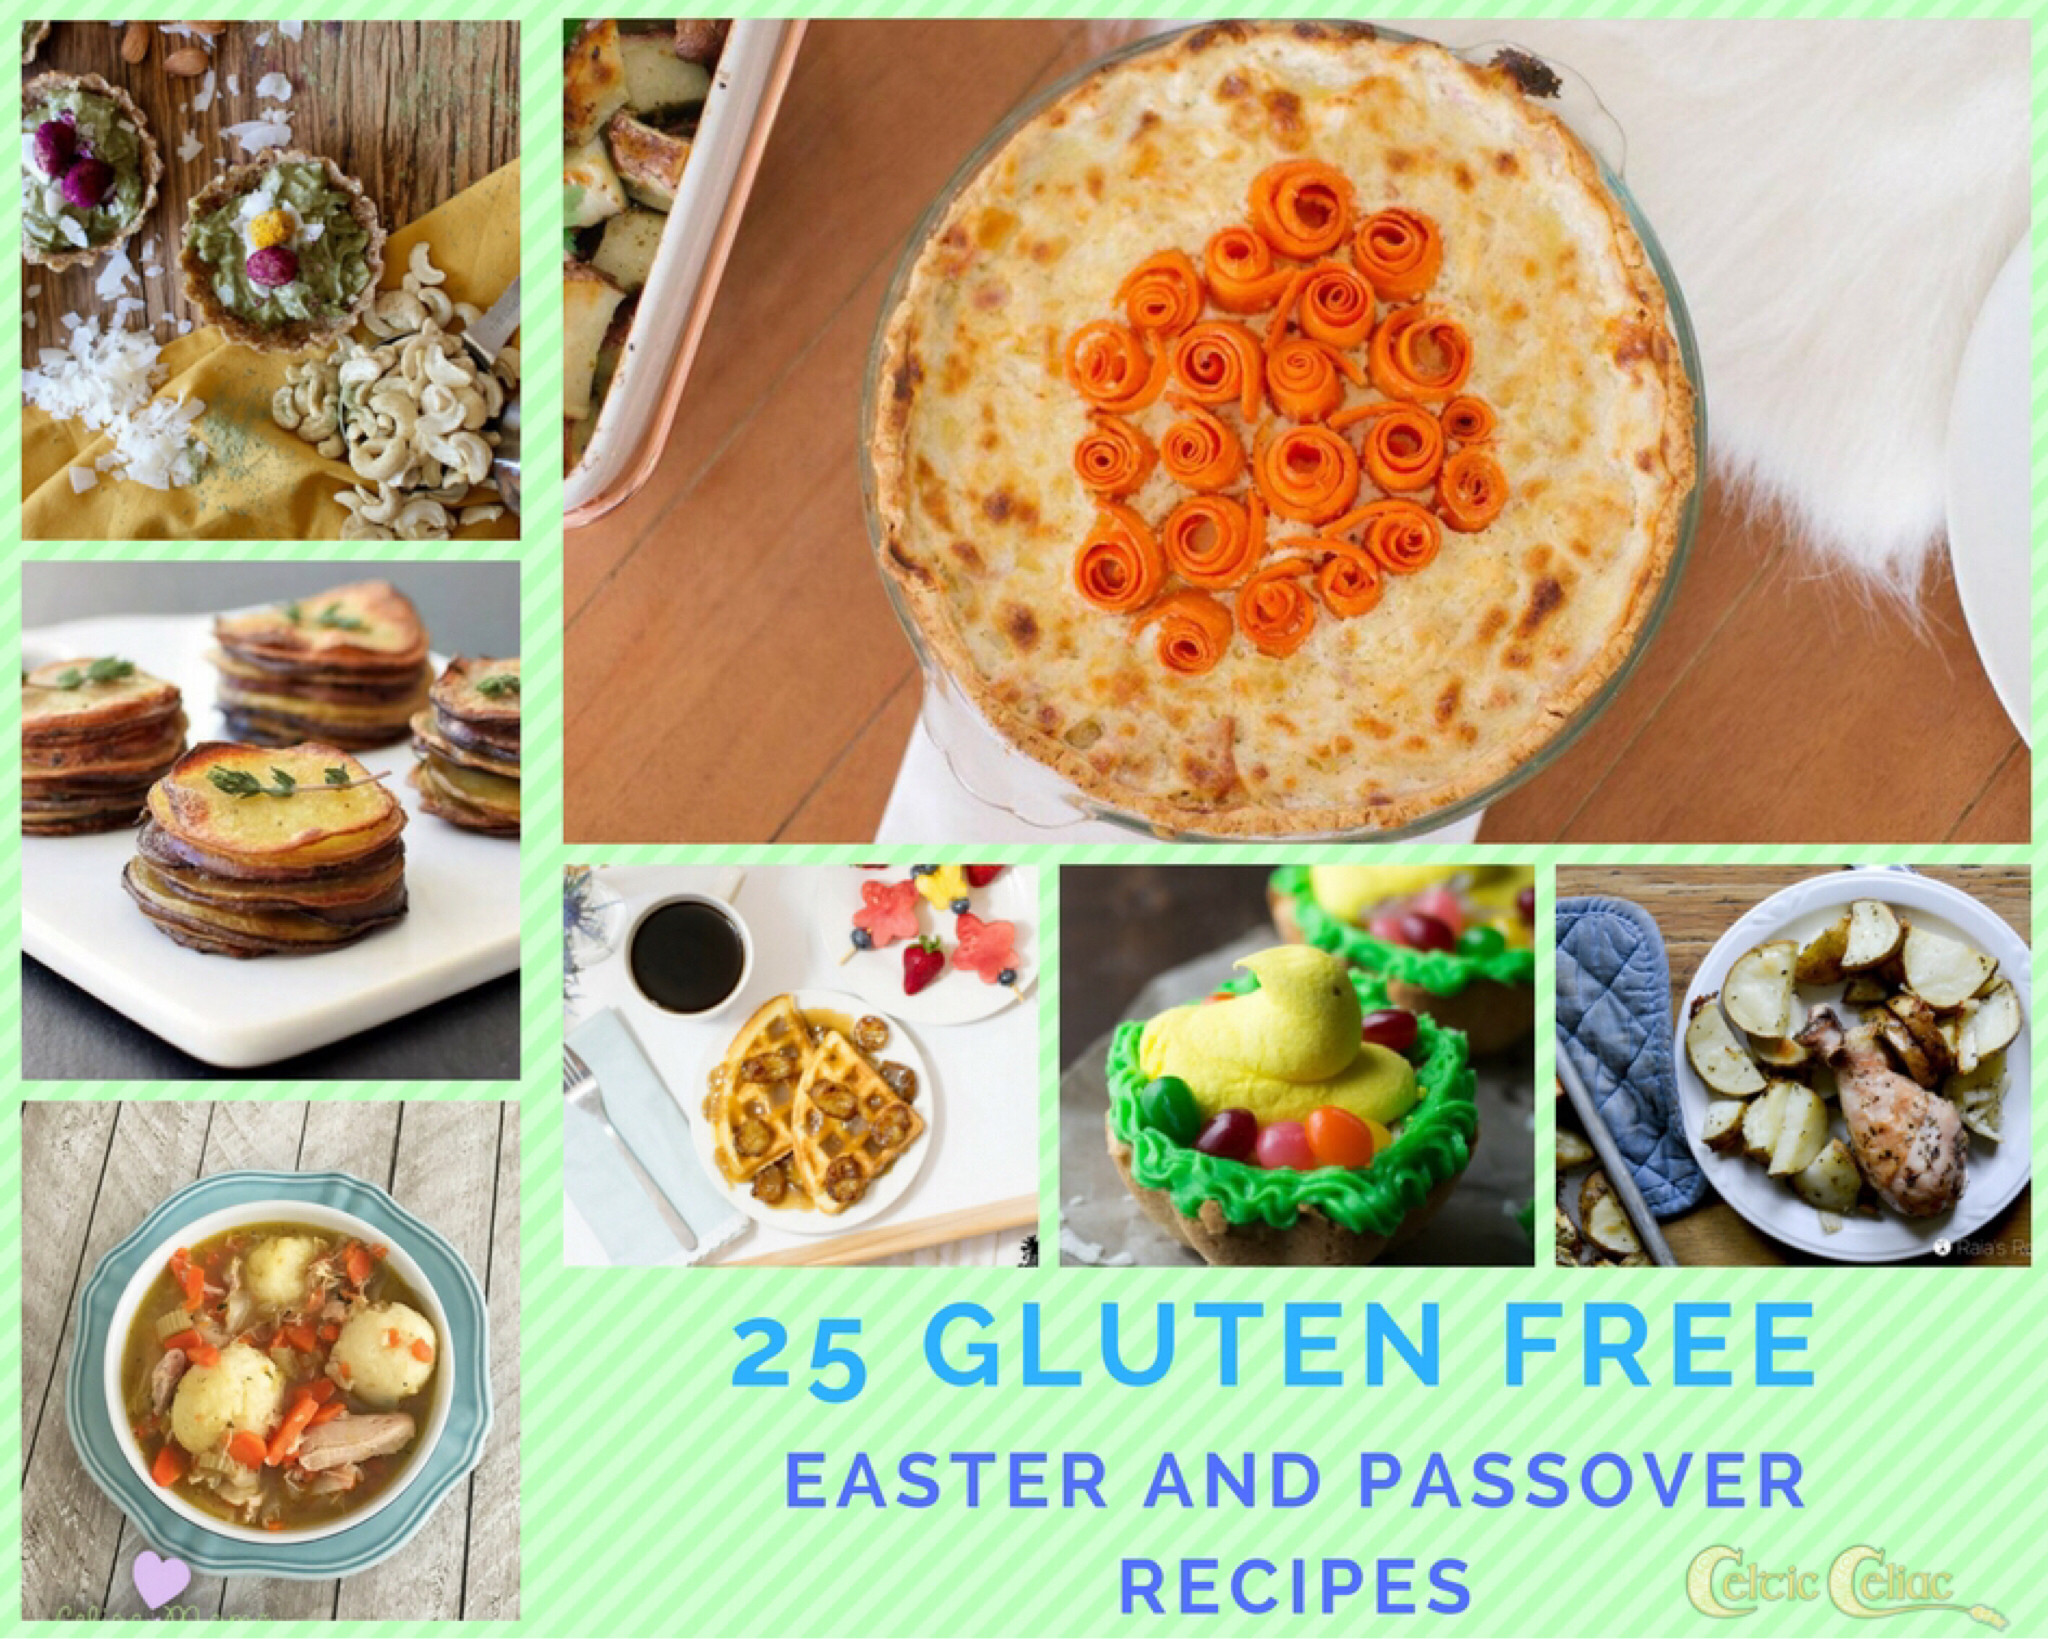 Gluten Free Easter Dinner  25 Gluten Free Recipes for Easter and Passover